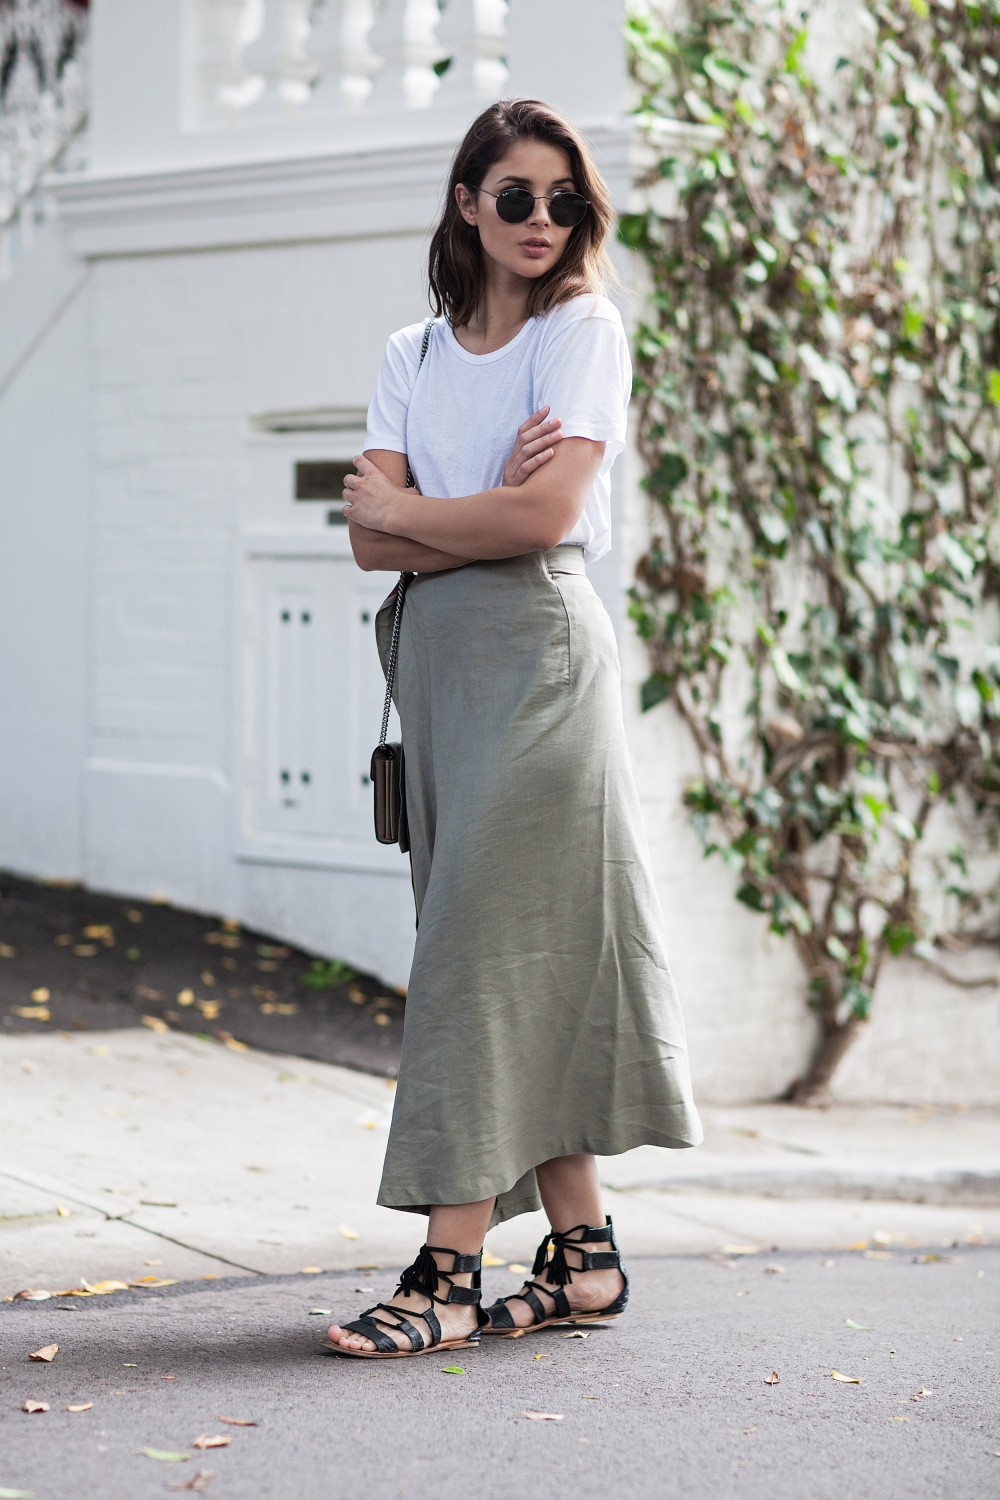 Khaki skirt and white t-shirt outfit